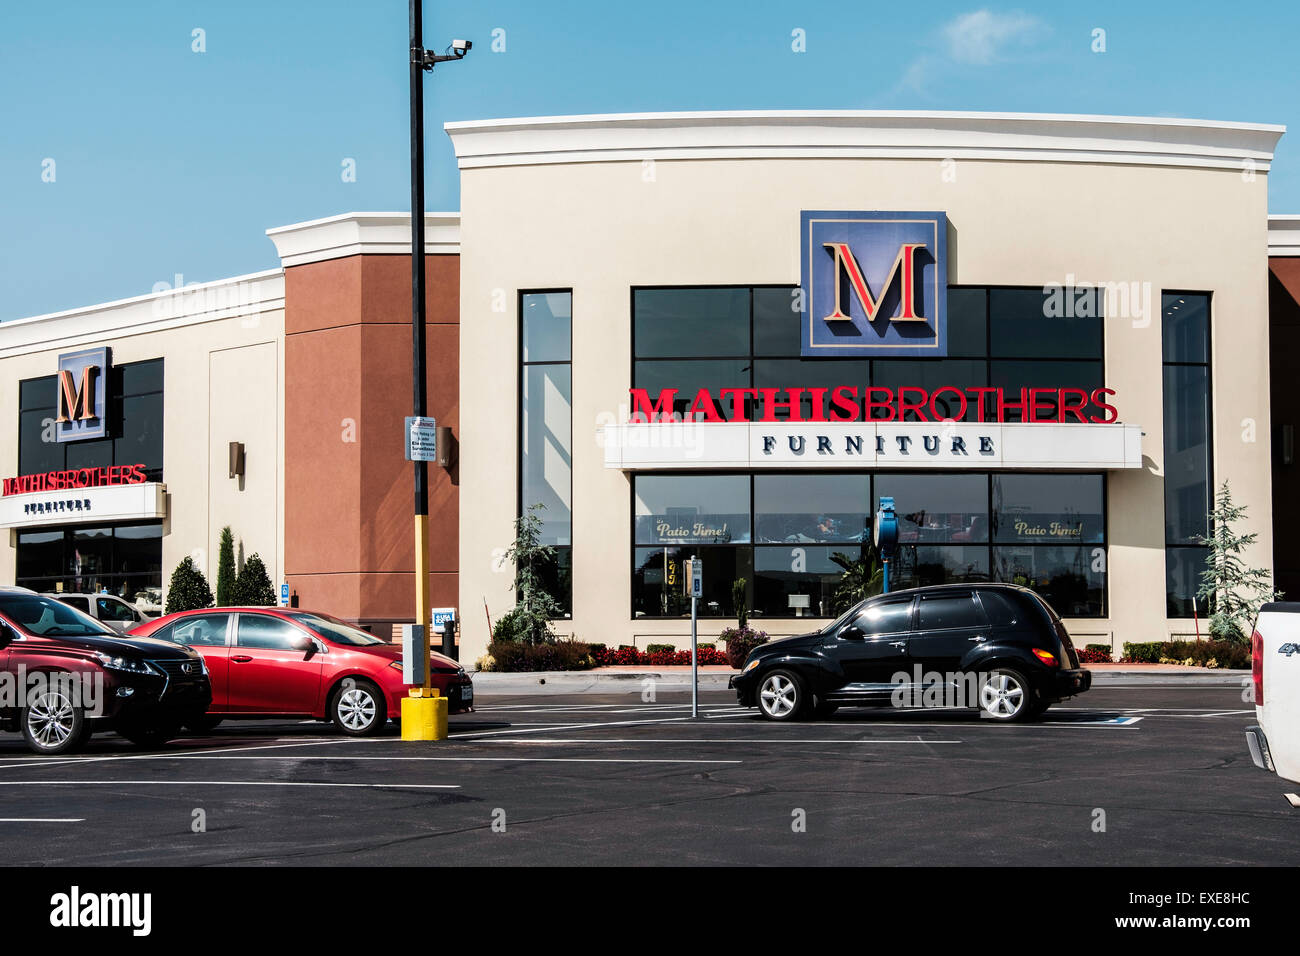 Stock Photo   The Exterior Front Of Mathis Brothers Furniture Store In Oklahoma  City, Oklahoma, USA